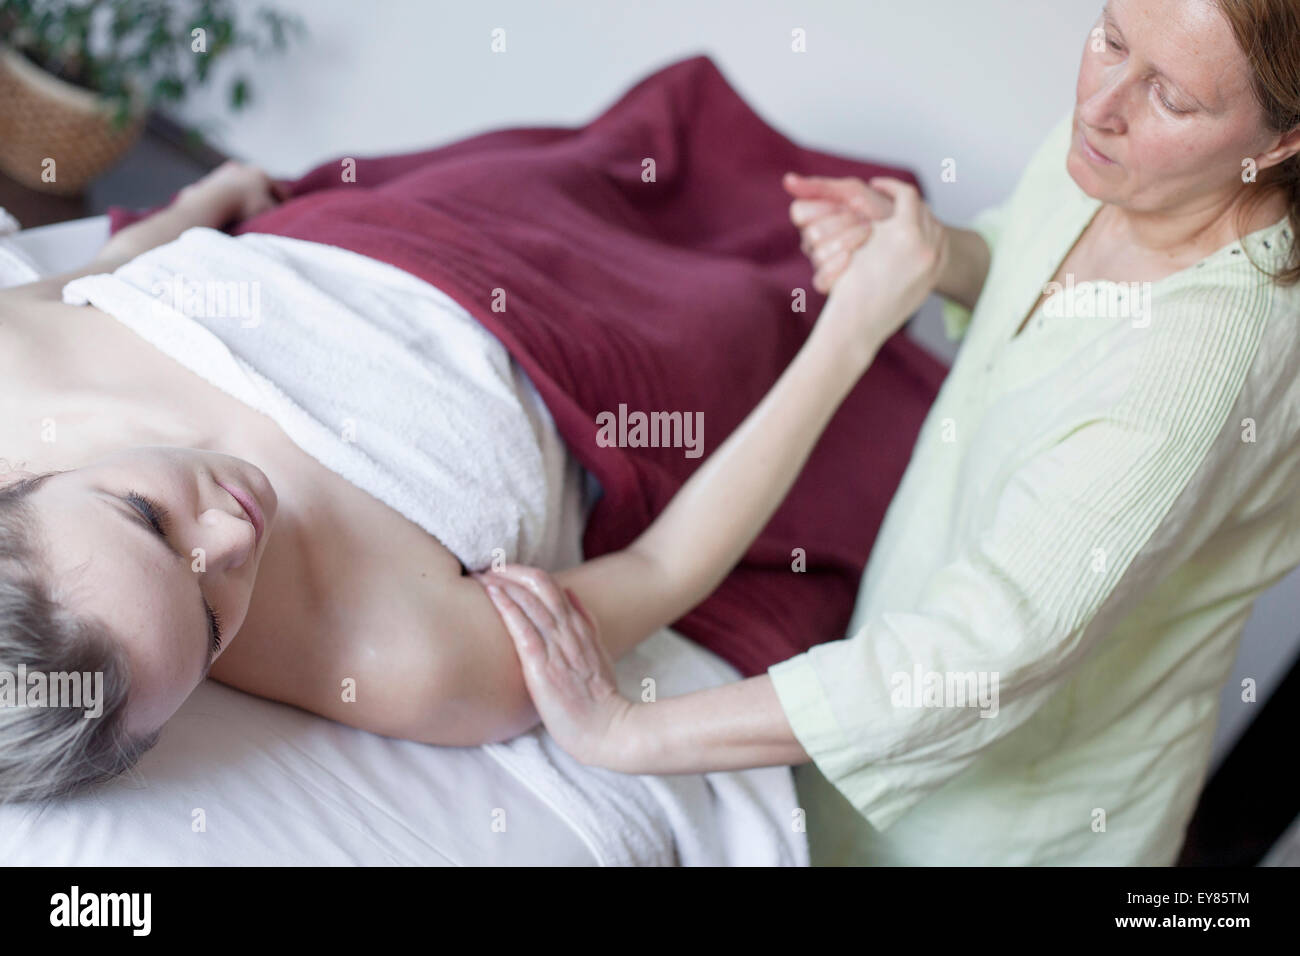 Young woman receiving Shiatsu treatment - Stock Image